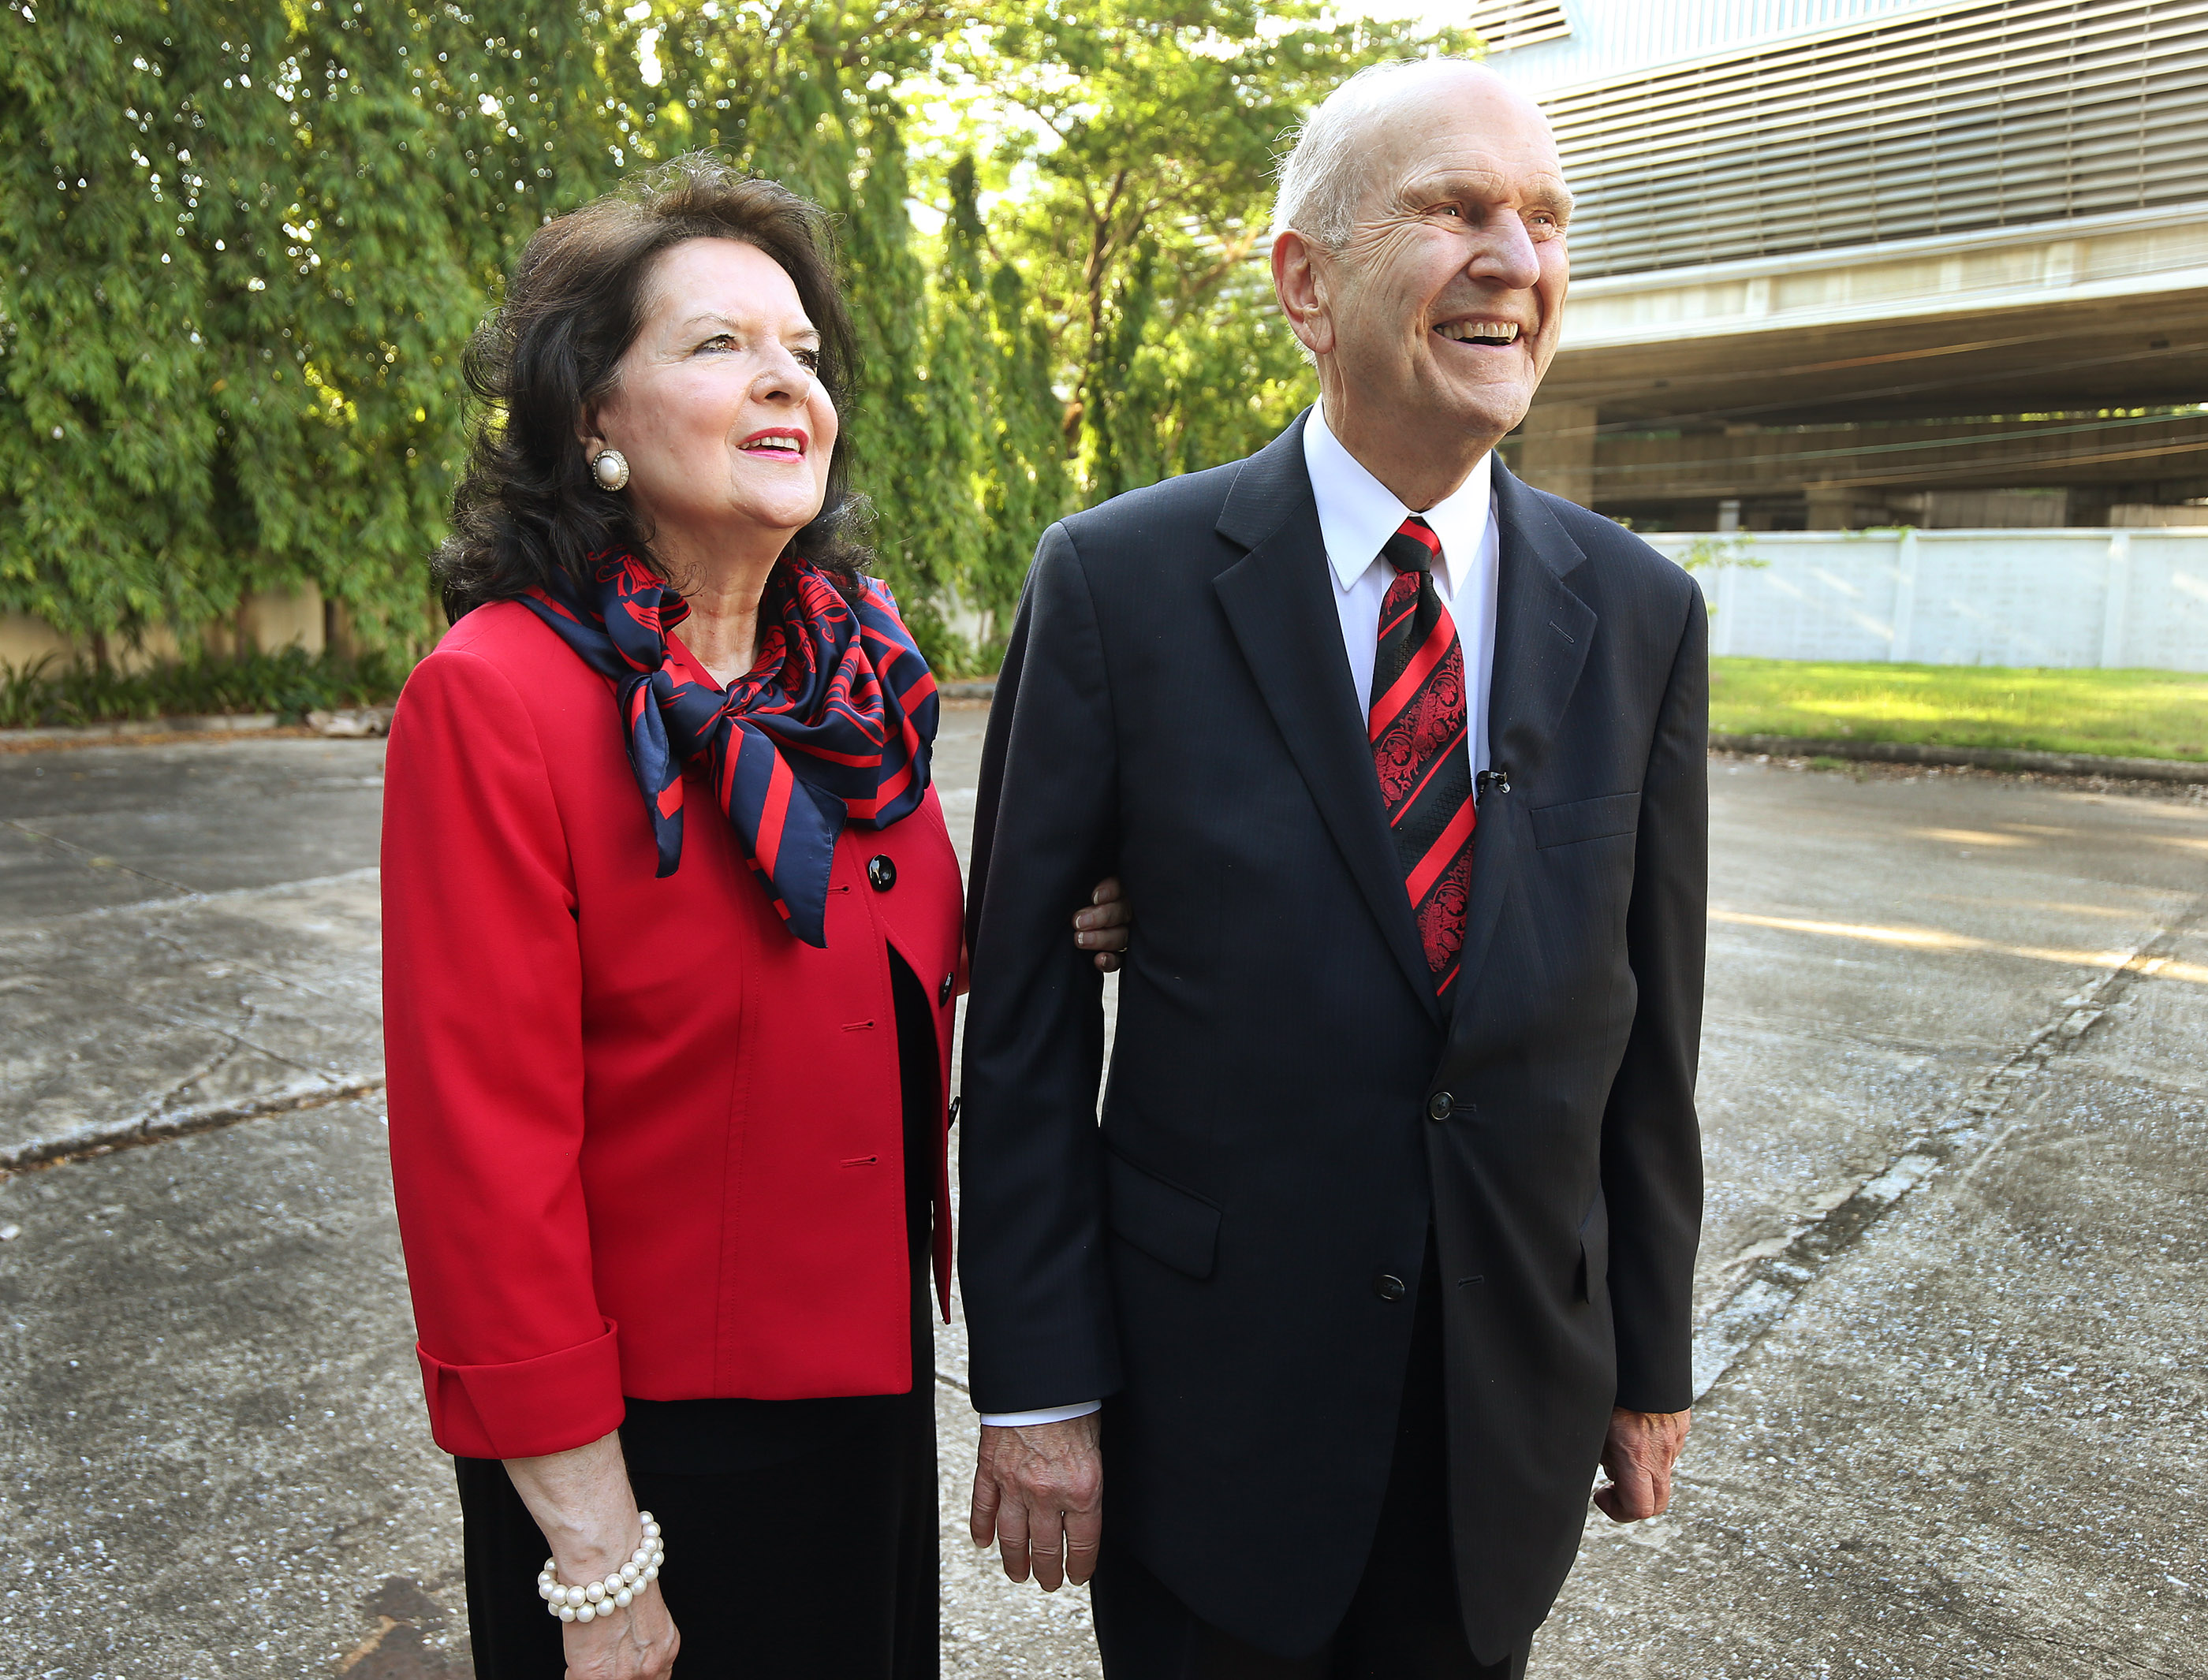 Russell M. Nelson, President of The Church of Jesus Christ of Latter-day Saints, and his wife, Sister Wendy Nelson, look over the site for a future temple in Bangkok, Thailand, on Friday, April 20, 2018.